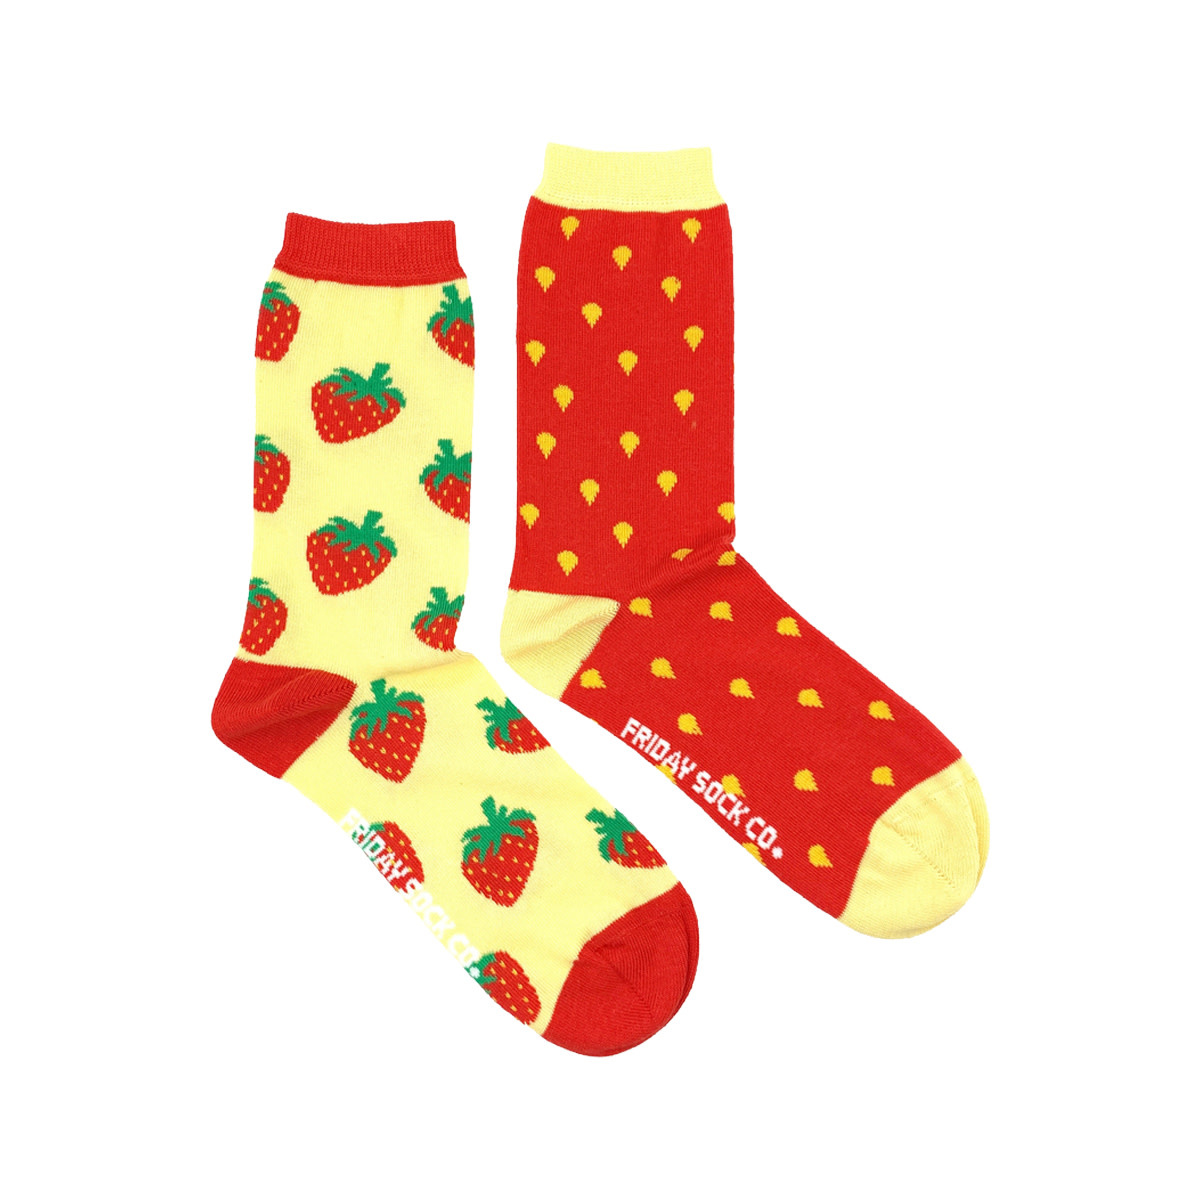 Friday Sock Co. Friday Sock Co. Women's Inside Out Strawberry Crew W 5 - 10 (M - 4 - 8)